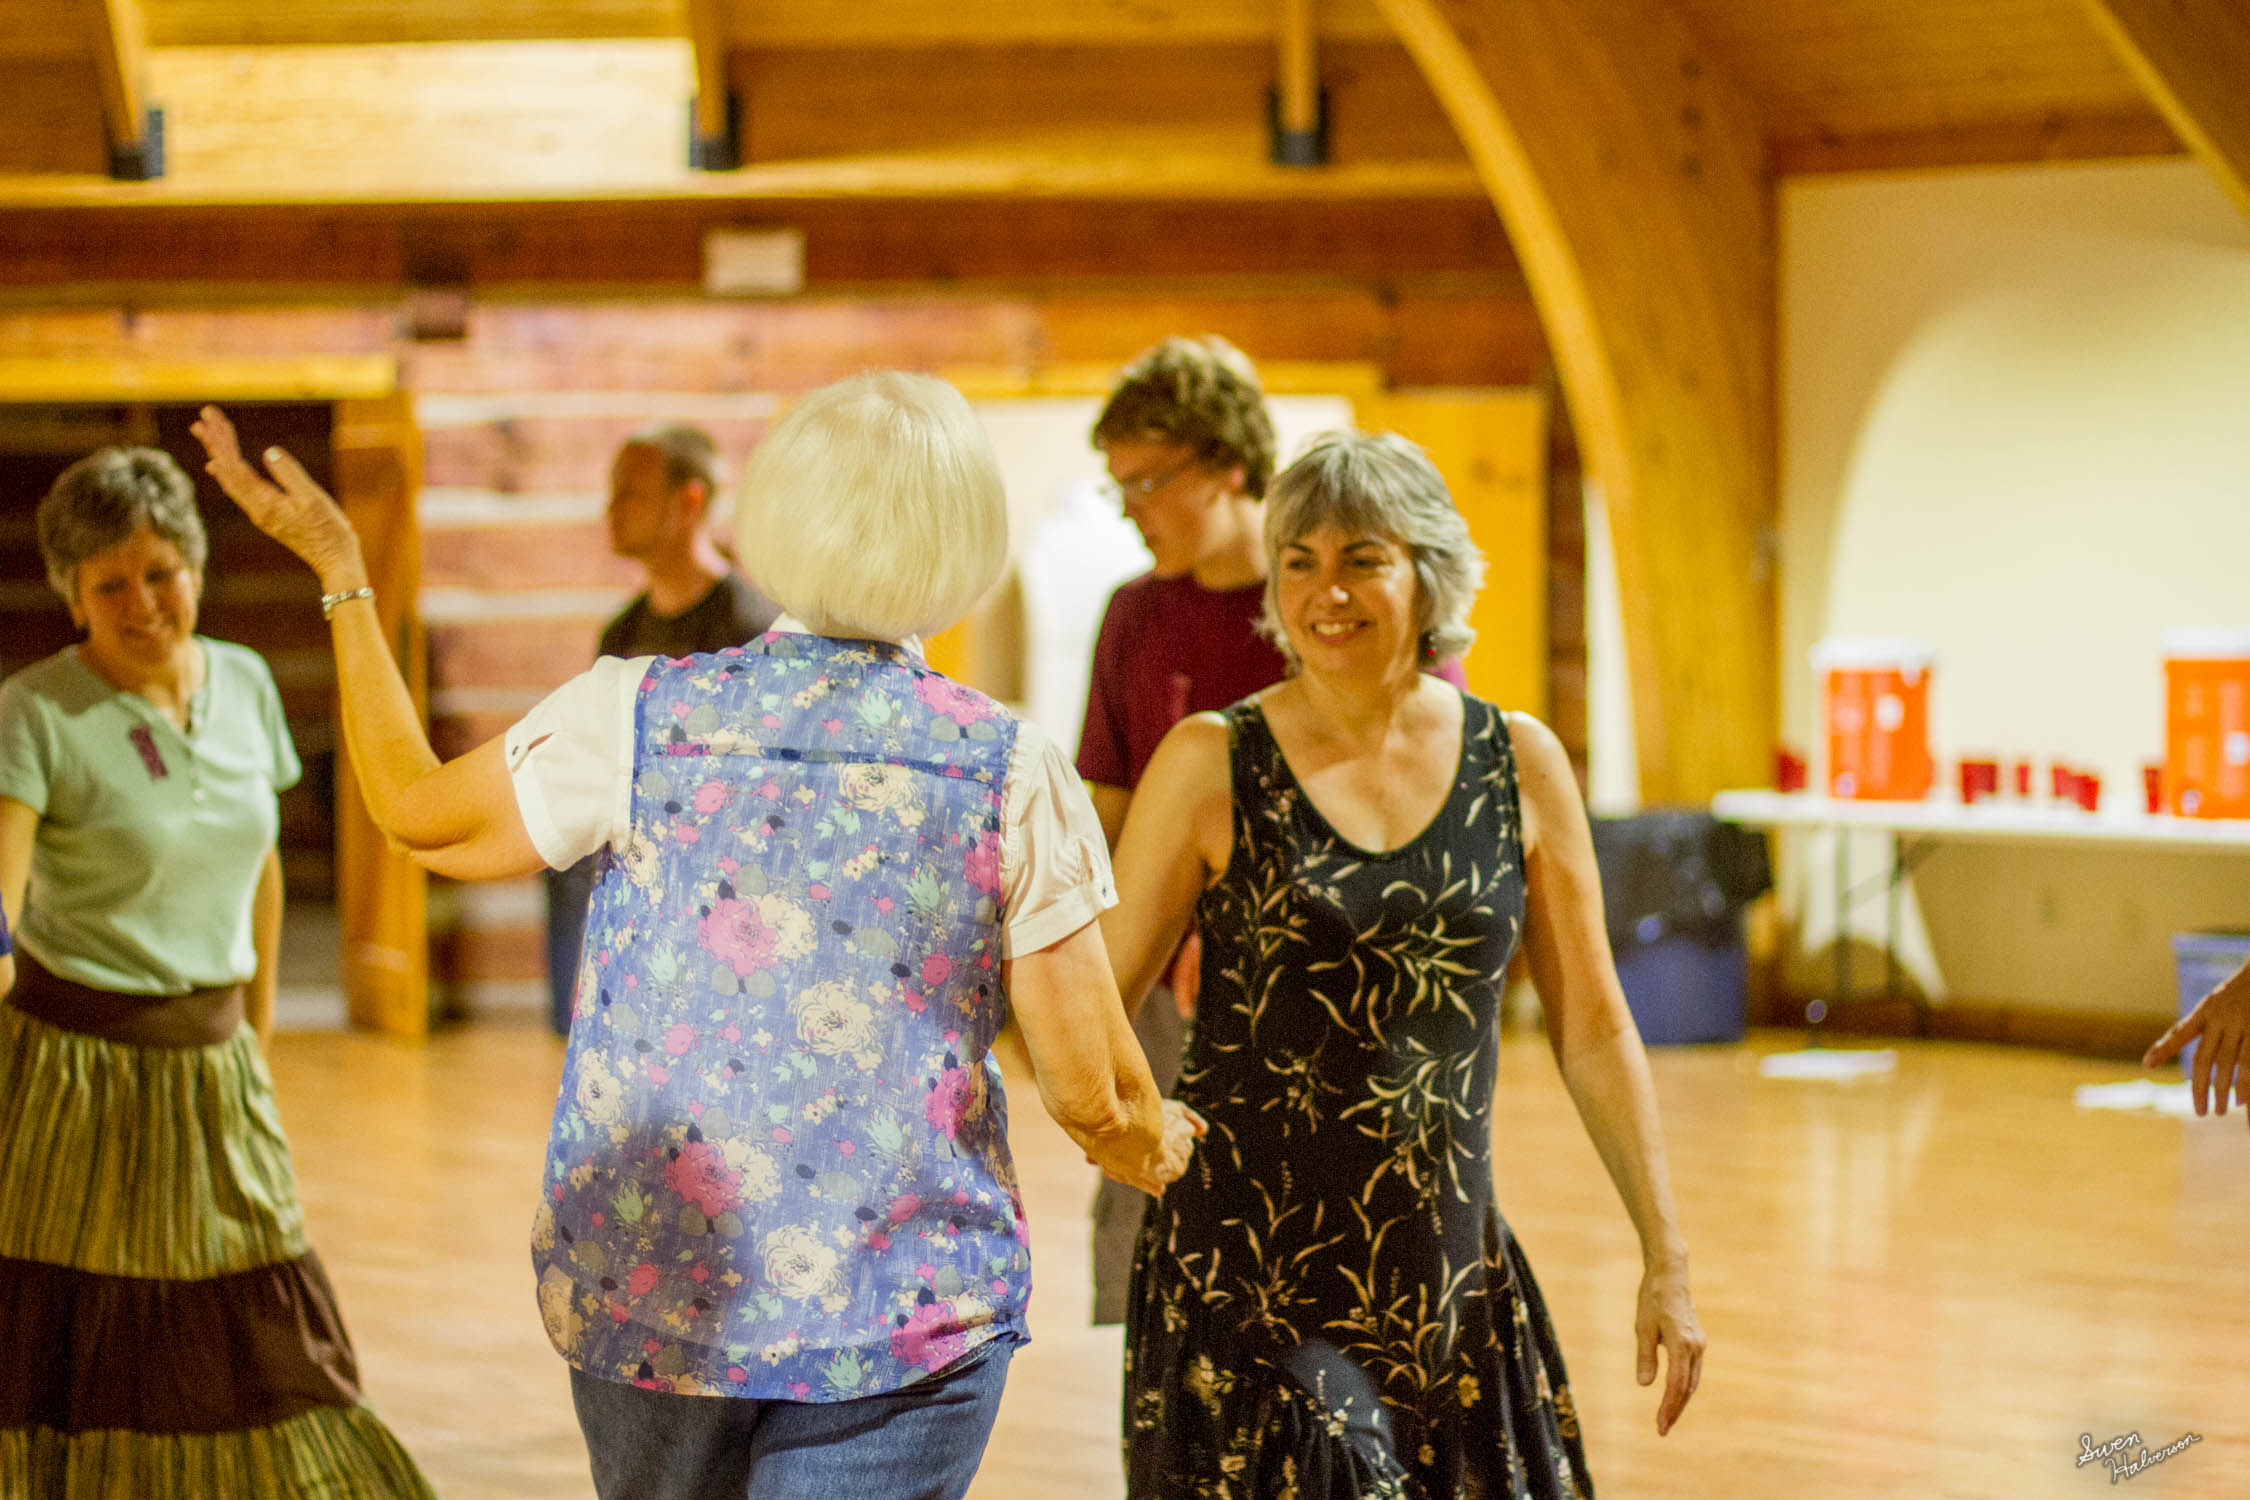 Contra dancing in Berea-036.jpg